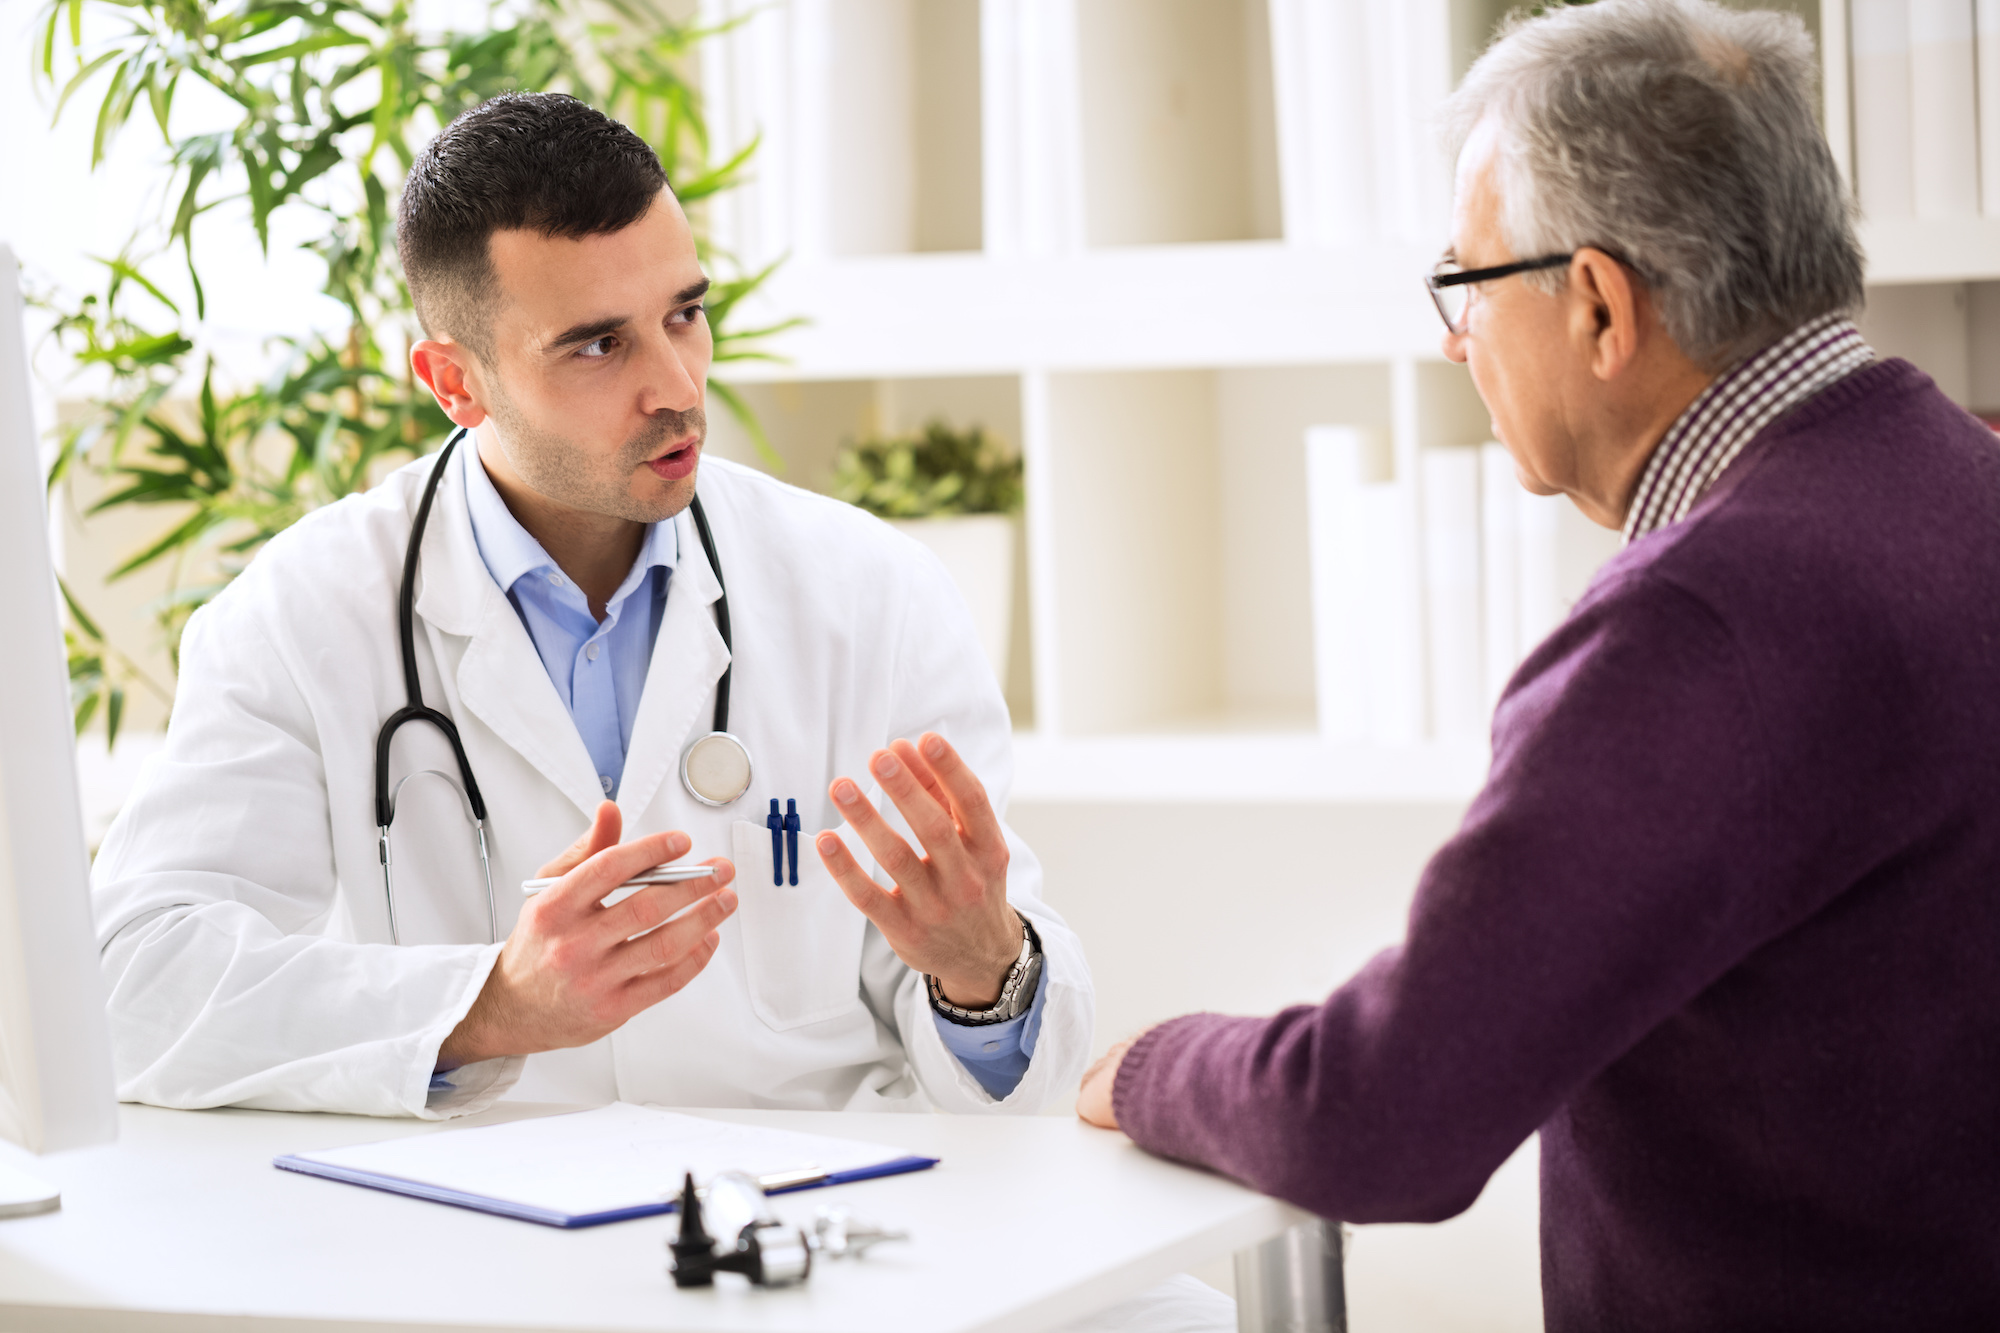 Physician seated speaking to man enhancing the doctor patient relationship | Vanguard Communications | Denver, CO